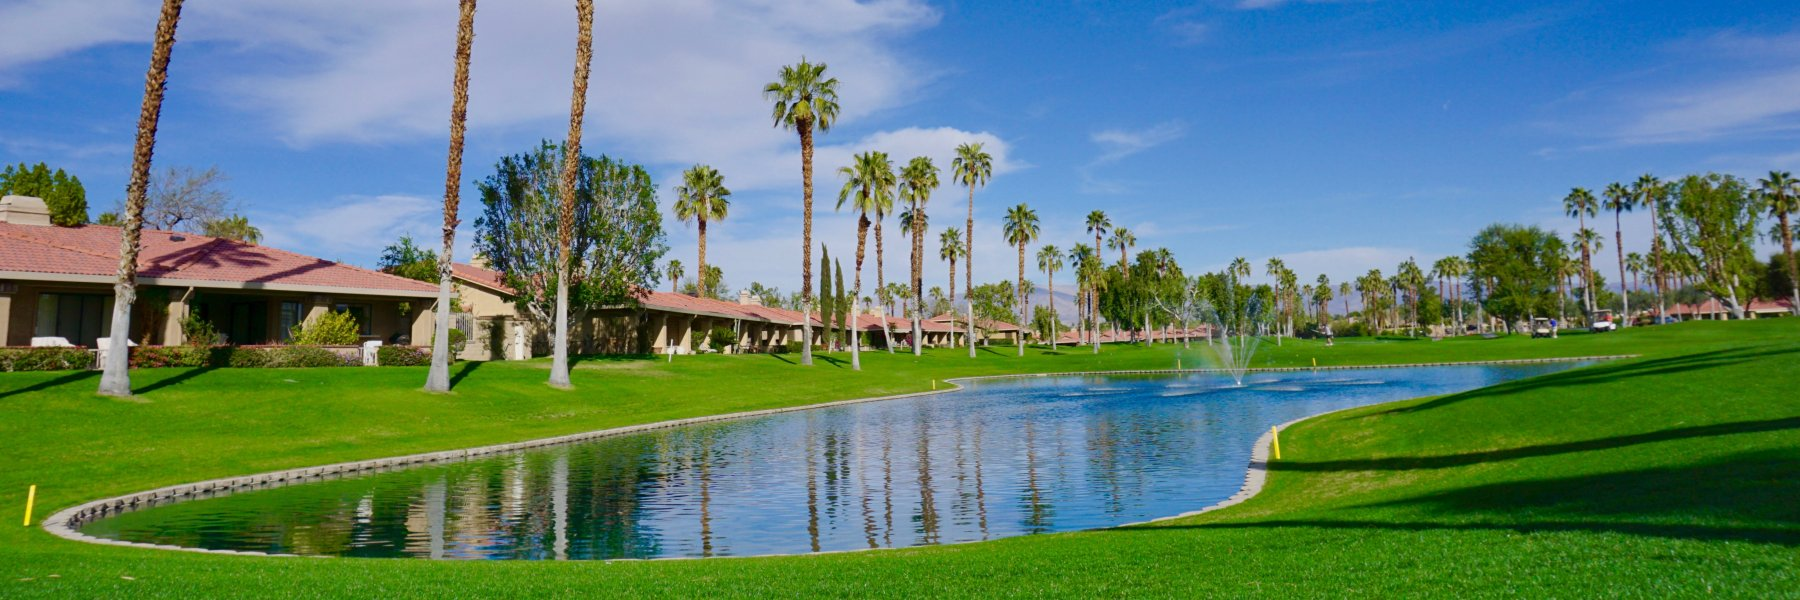 Sun Terrace is a community of homes in Palm Desert California